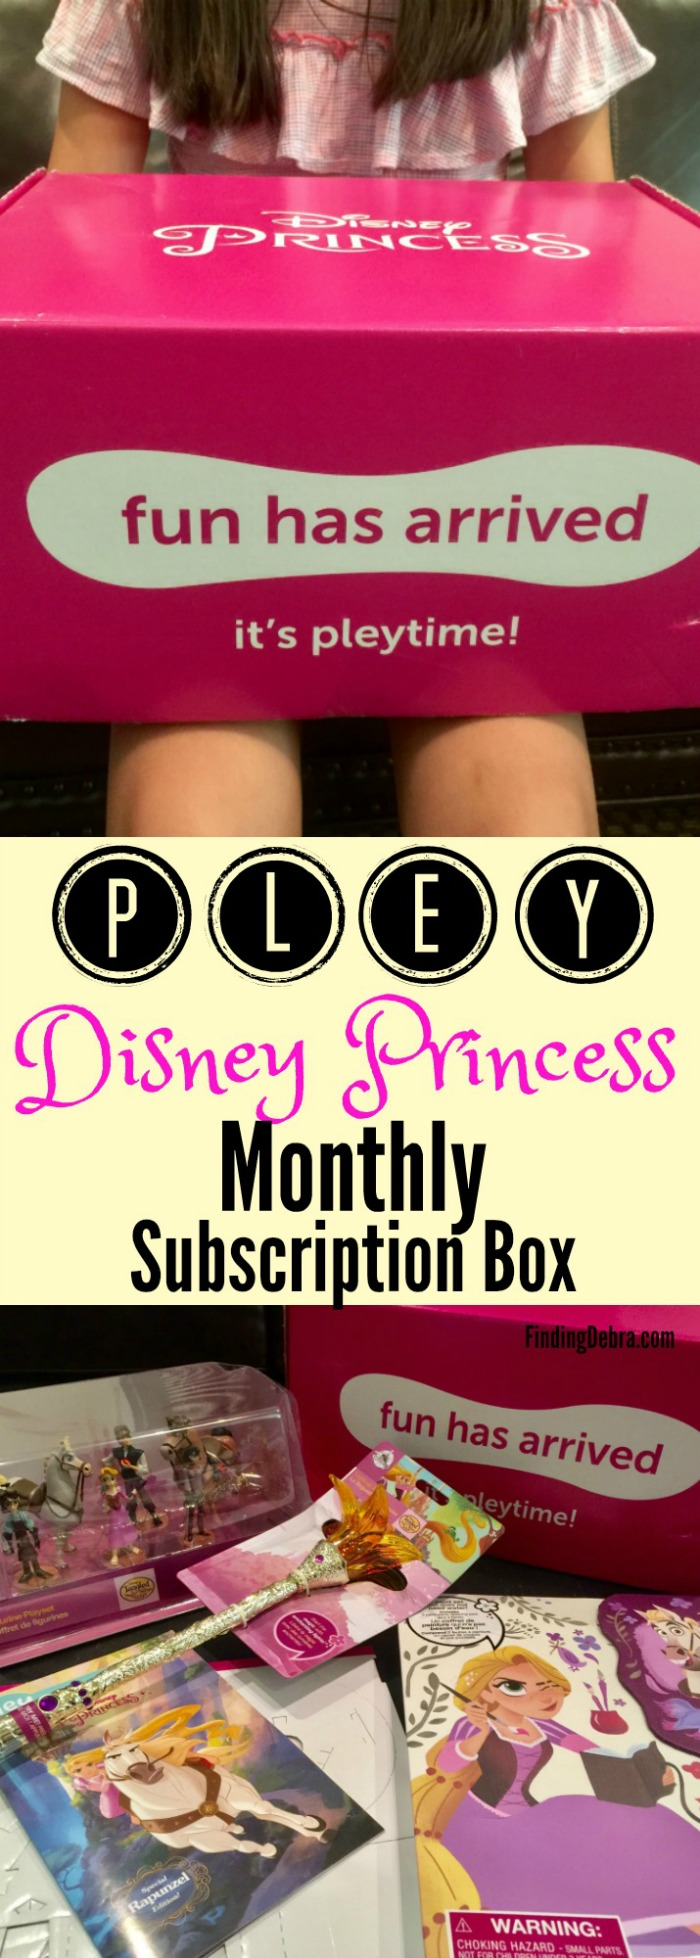 Pley Disney Princess Monthly Subscription Box - Find out all the details about our experience.